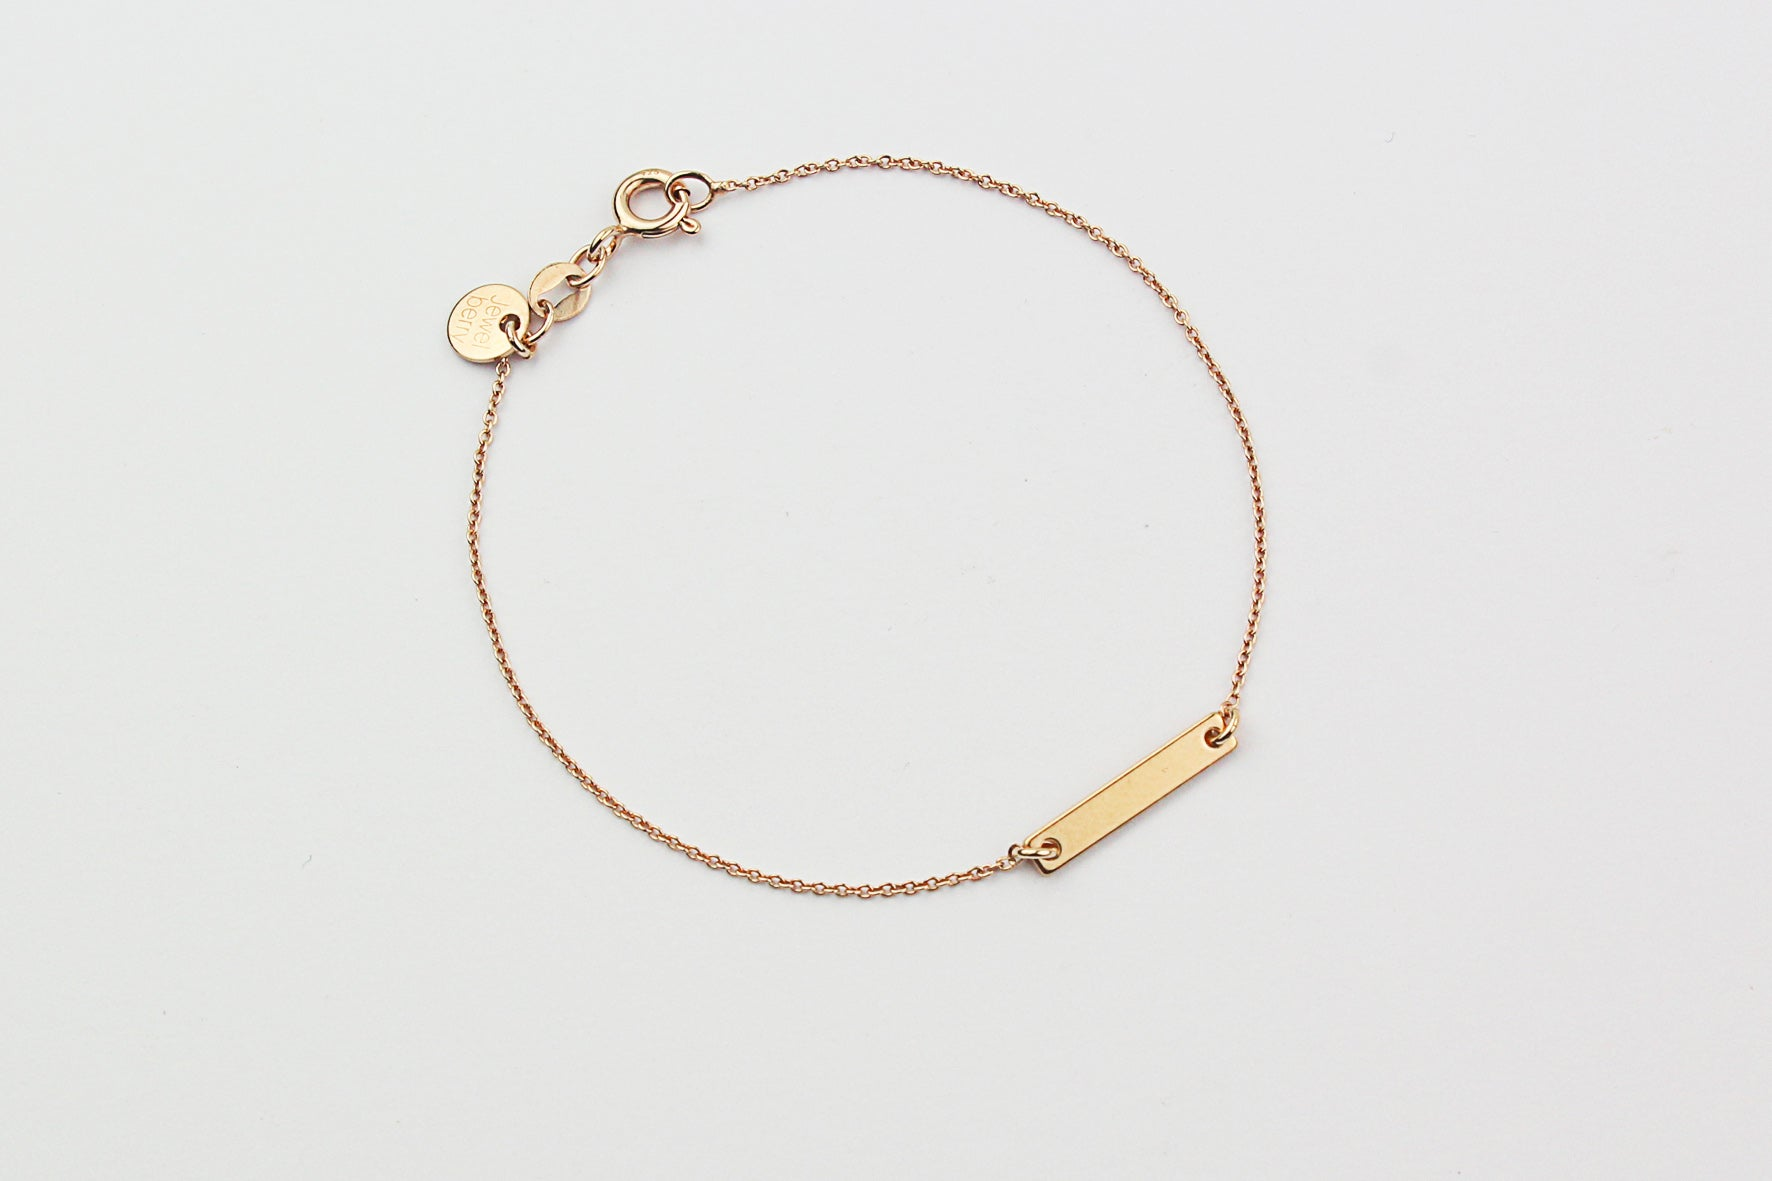 ....Armband SMALL BAR Sterling Silber rosé vergoldet..Bracelet SMALL BAR Sterling Silver rose gold plated....